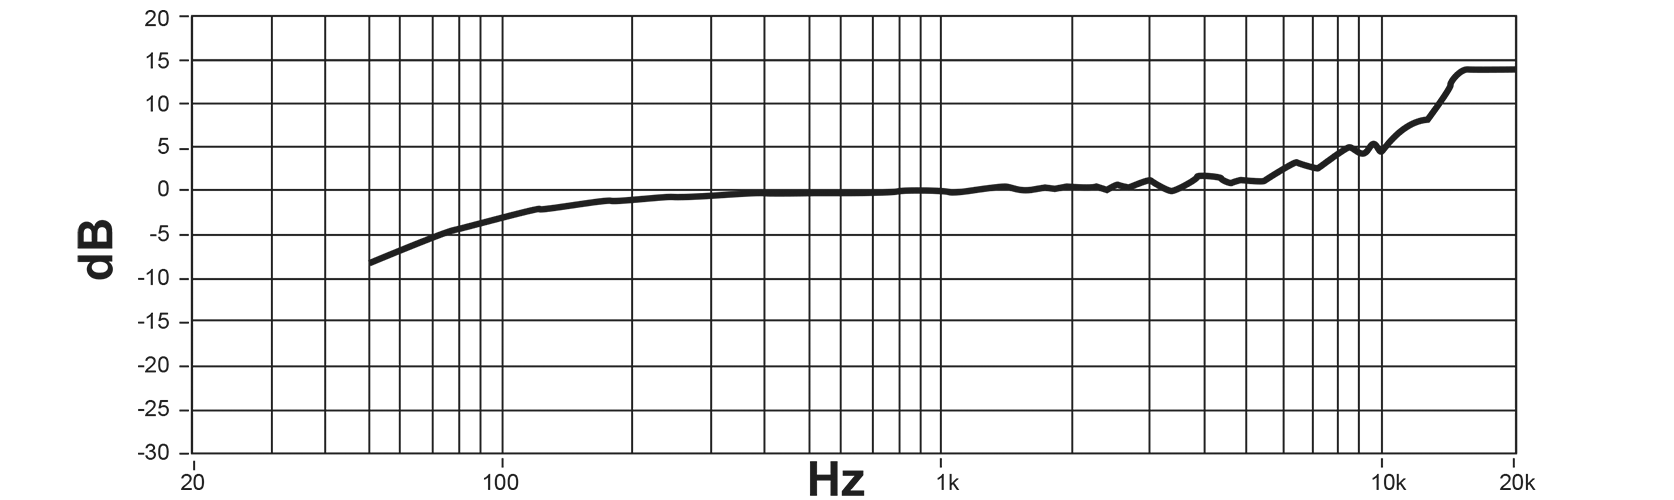 Shure Digital Condenser Microphone                    Frequency Response Curve Image